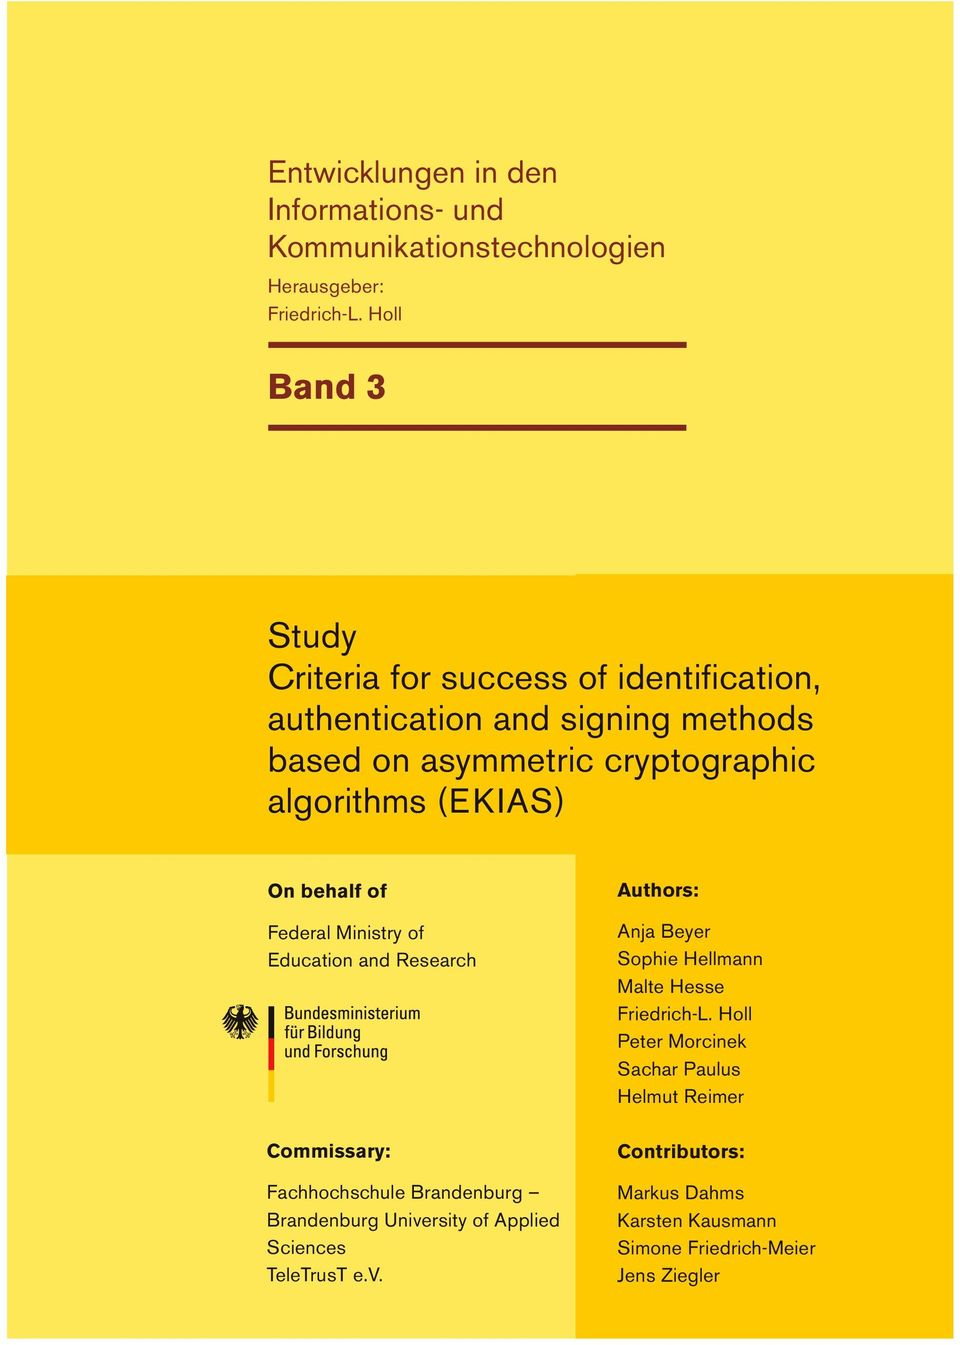 (EKIAS) On behalf of Federal Ministry of Education and Research Commissary: Fachhochschule Brandenburg Brandenburg University of Applied